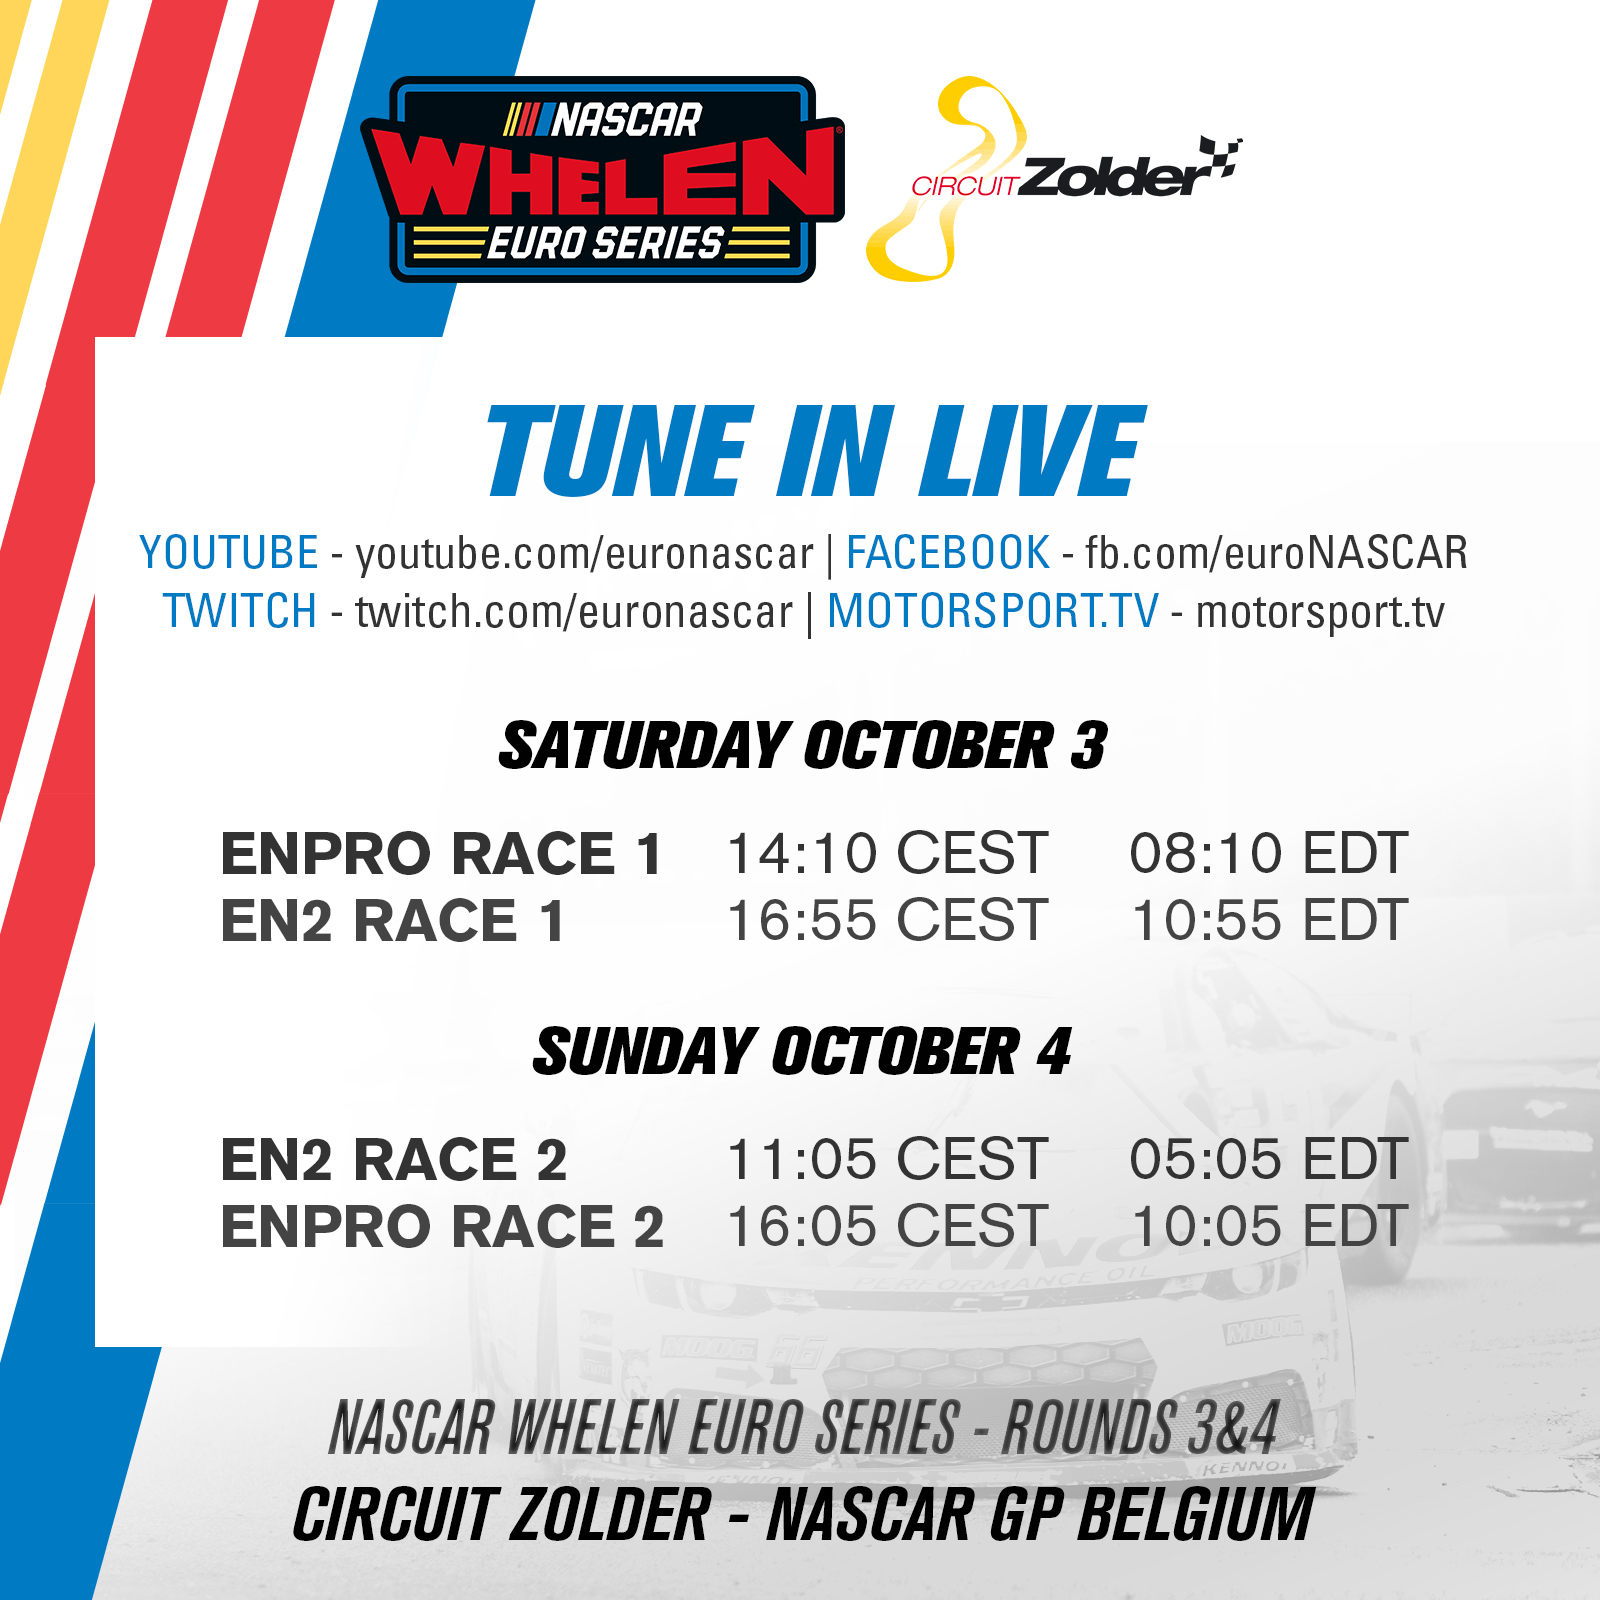 Streaming Schedule Square Zolder 2020